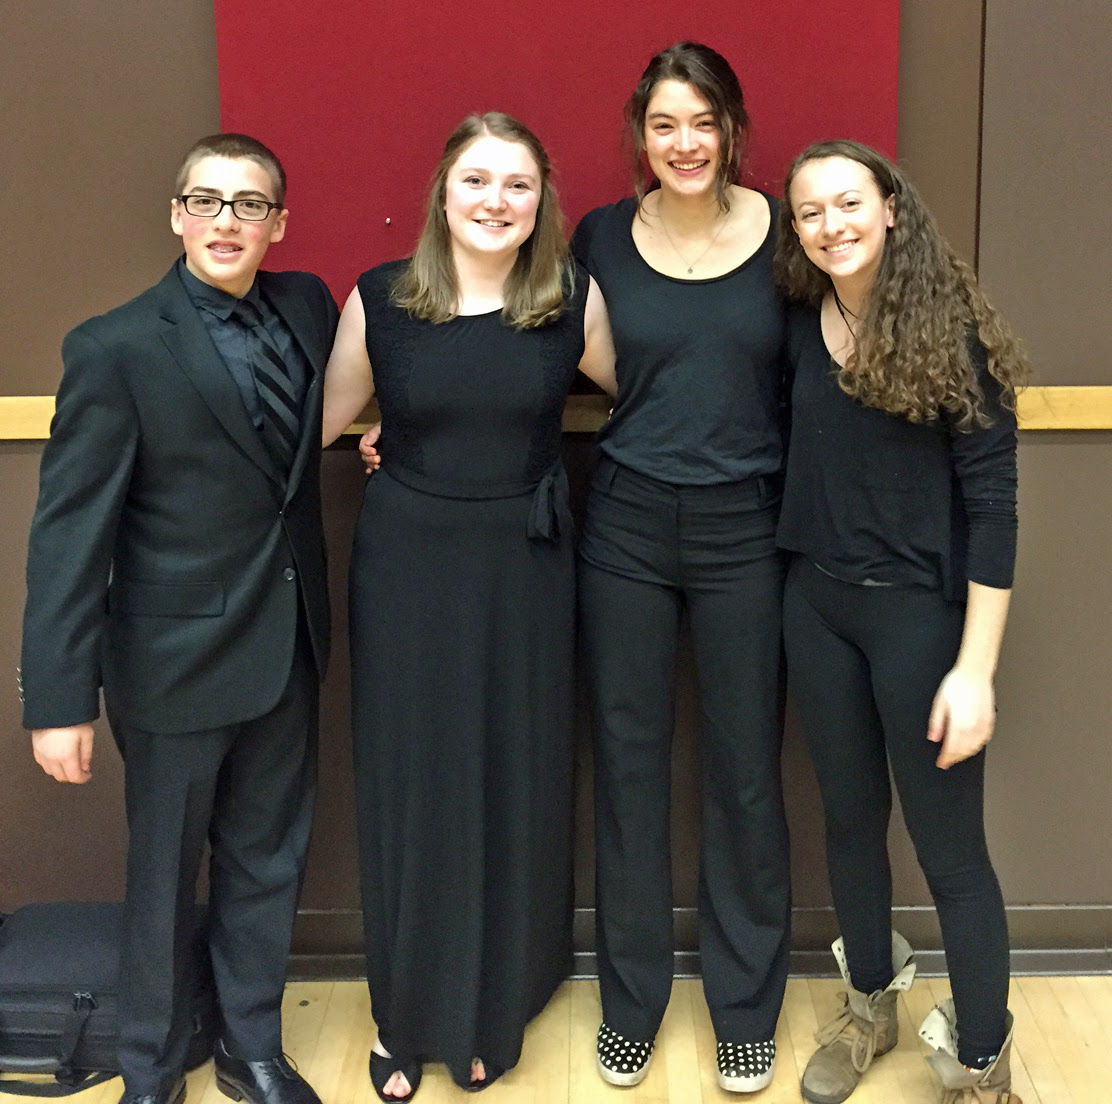 Four musicians from SSHS were chosen for the 2016 Colorado All State Orchestra. They performed challenging repertoire at the concert Saturday night at CSU in Fort Collins led by Maestro Thomas Wilson of the Colorado Springs Philharmonic. They are (from left to right): Jacob VanDerWerf (violin), Melissa Requist (flute/piccolo), Lark Skov (viola), Jenna Kramer (violin). Submitted by James Knapp.